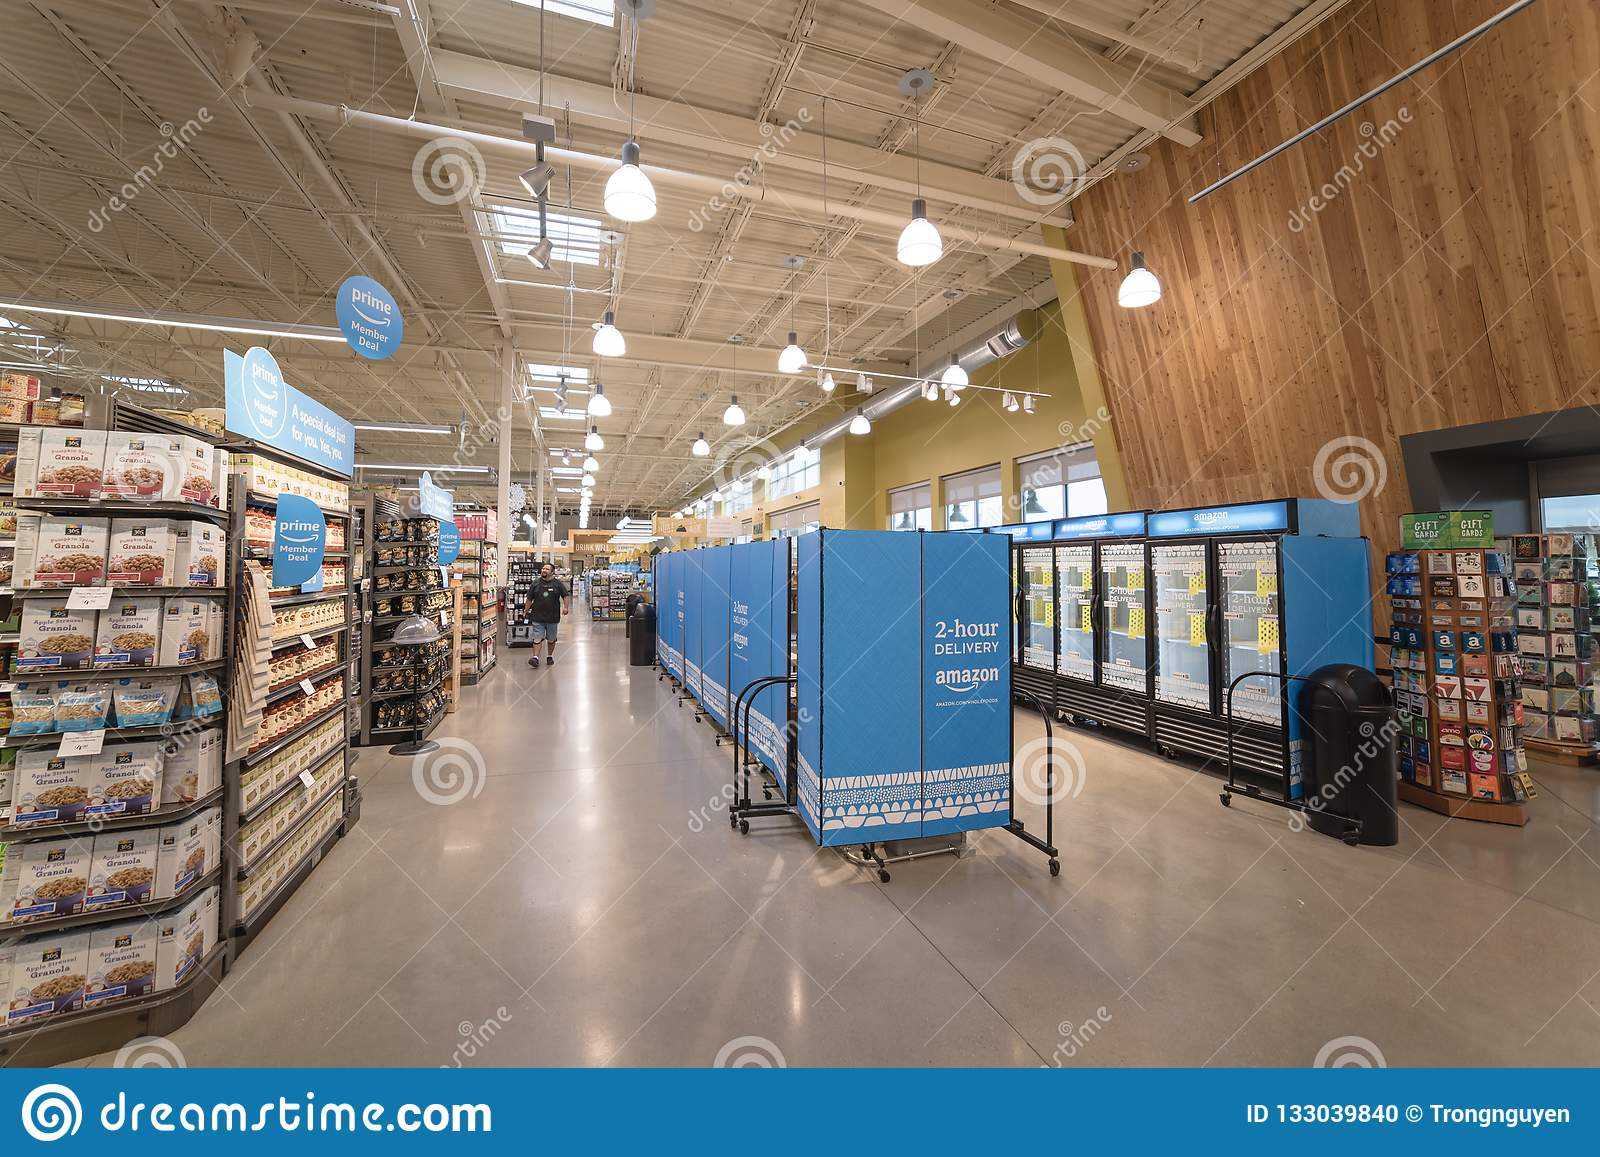 2-hour Delivery Service Section At Whole Foods For Amazon